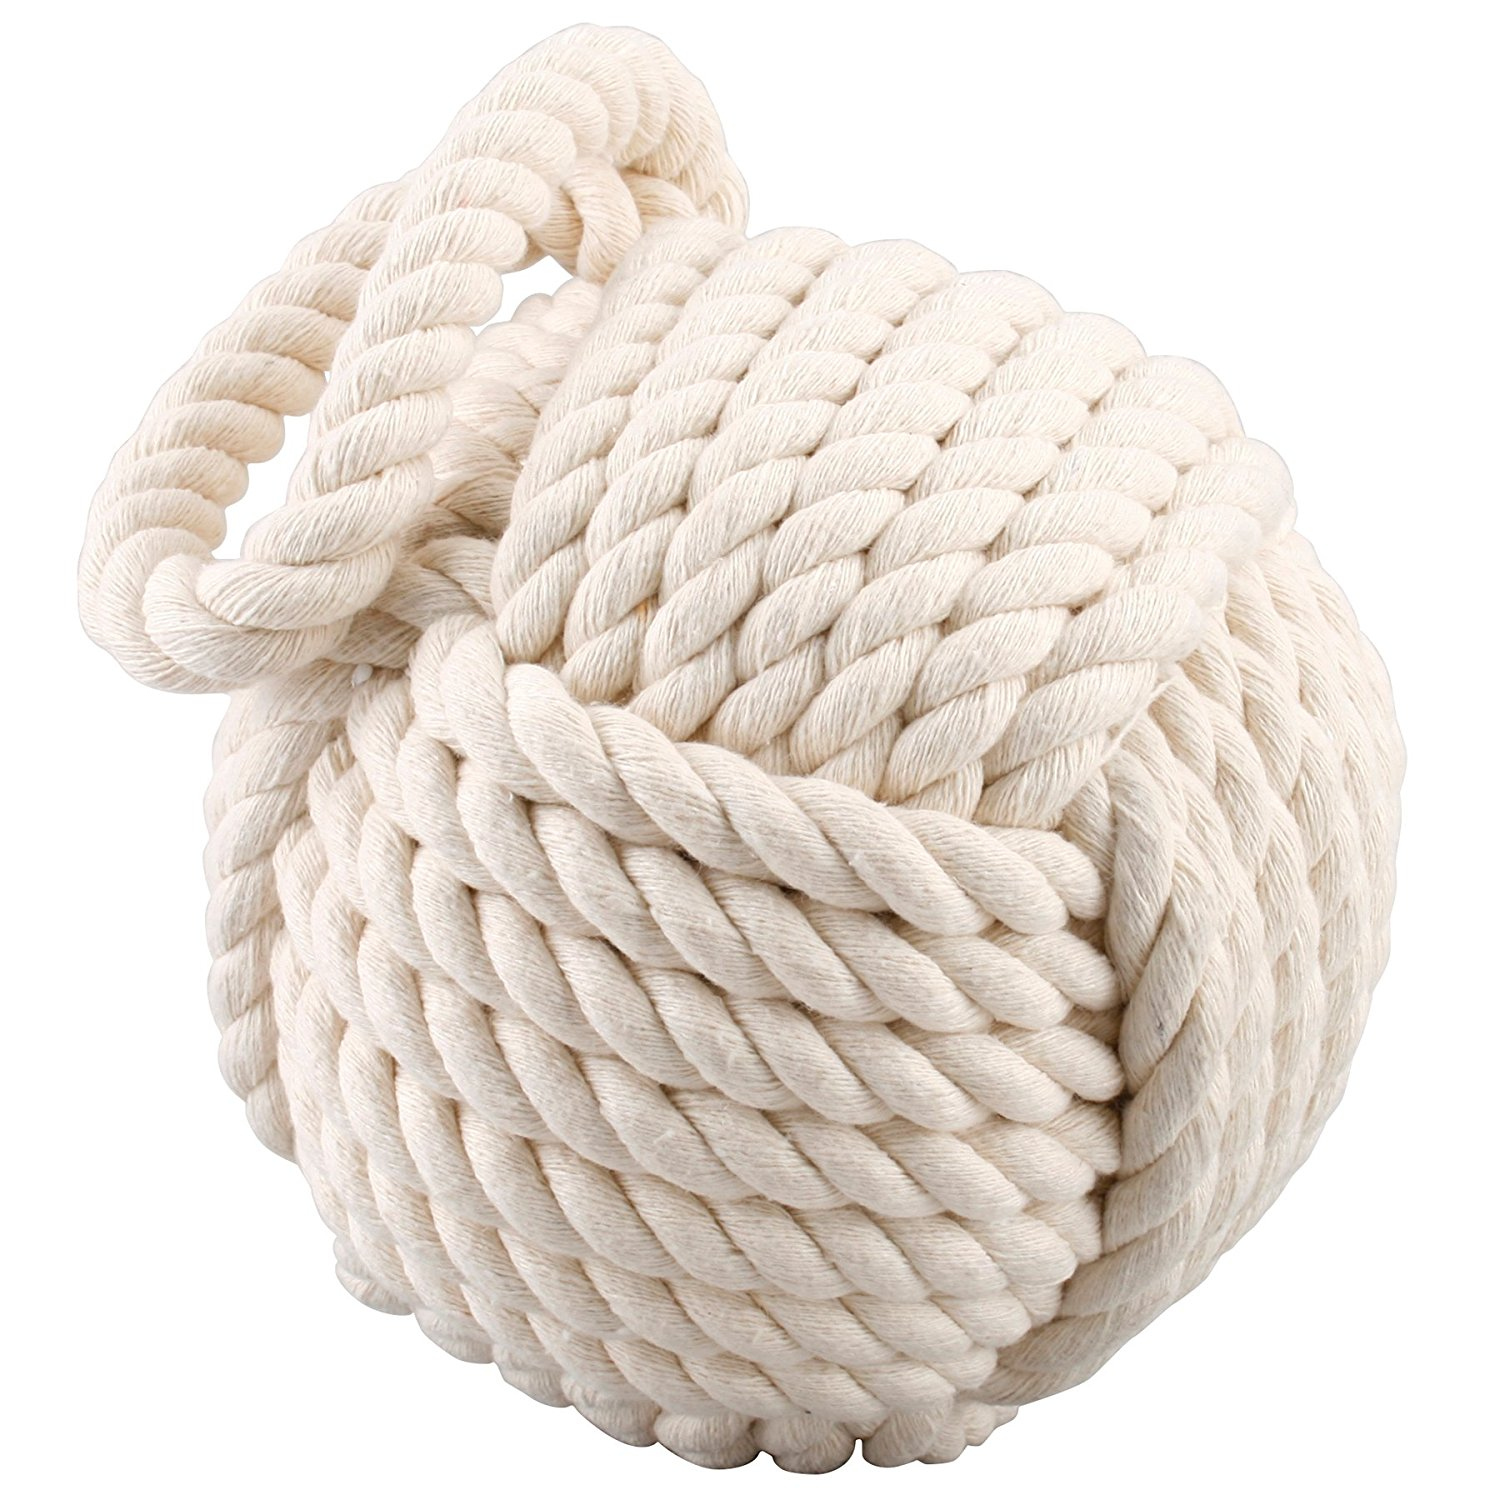 Nautical Doorstop Nautical Weighted Cream Rope Ball Doorstop